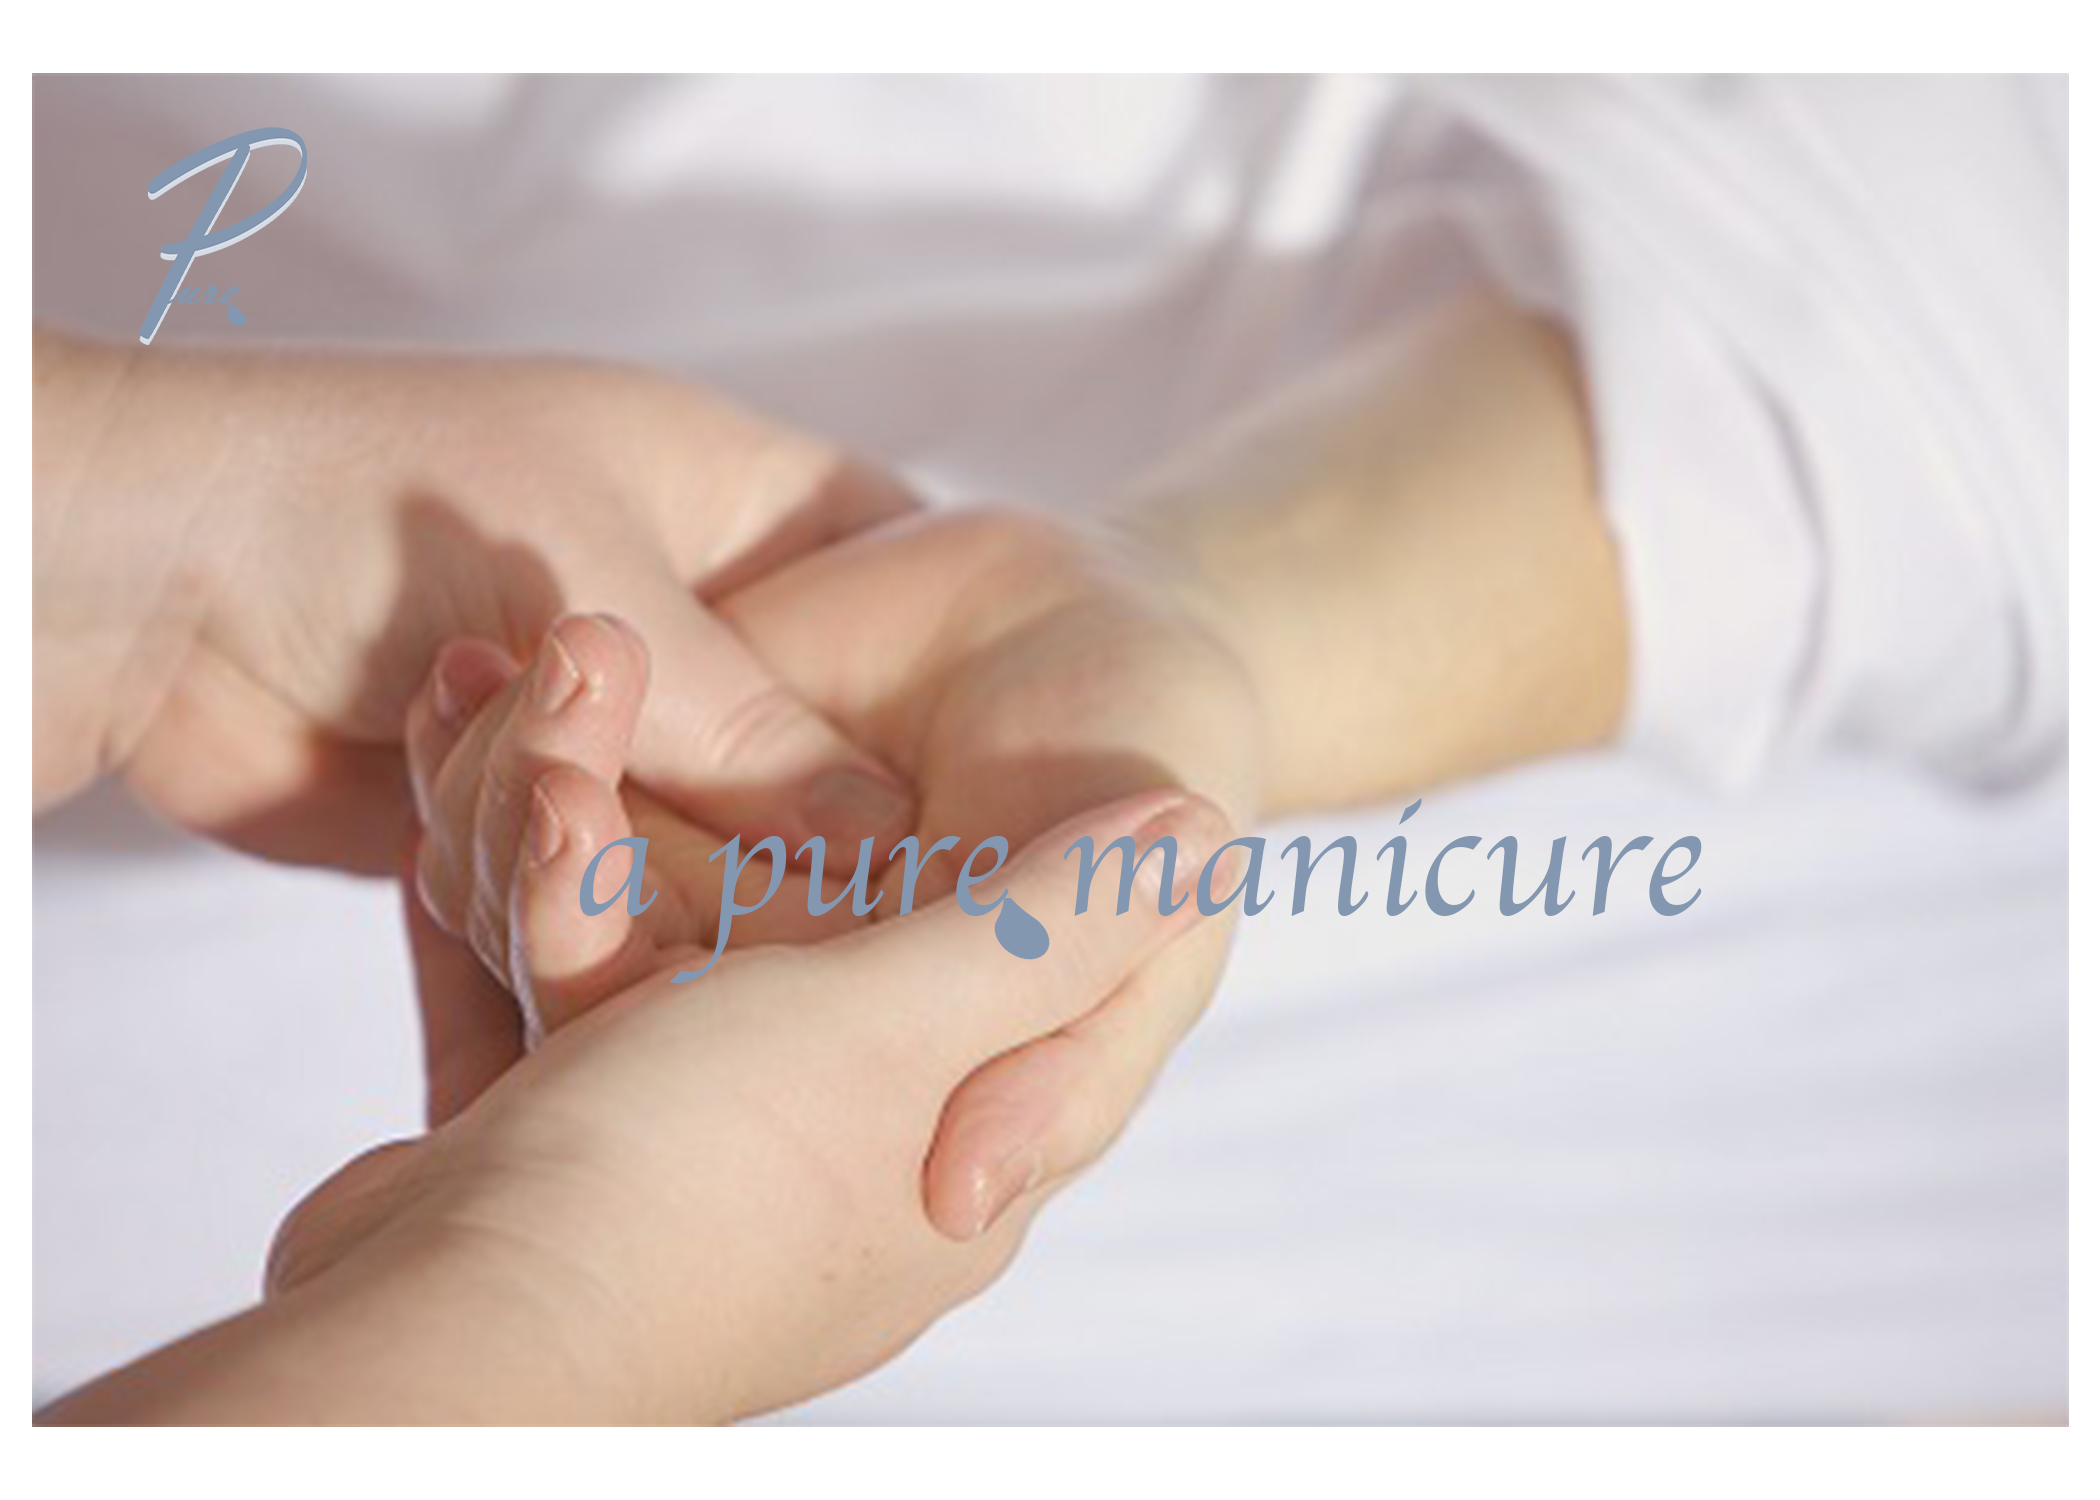 The first touch of our    pure manicure    begins with a stress relieving arm & hand massage, stimulating your body's healthy blood flow. Your nails will then be filed and treated with our handmade cuticle balm. Our minty fresh salt scrub combined with our amber and vanilla lotion will leave your hands feeling refreshed. Our signature aloe oil and a high shine nail buff, will finish your pure manicure perfectly.